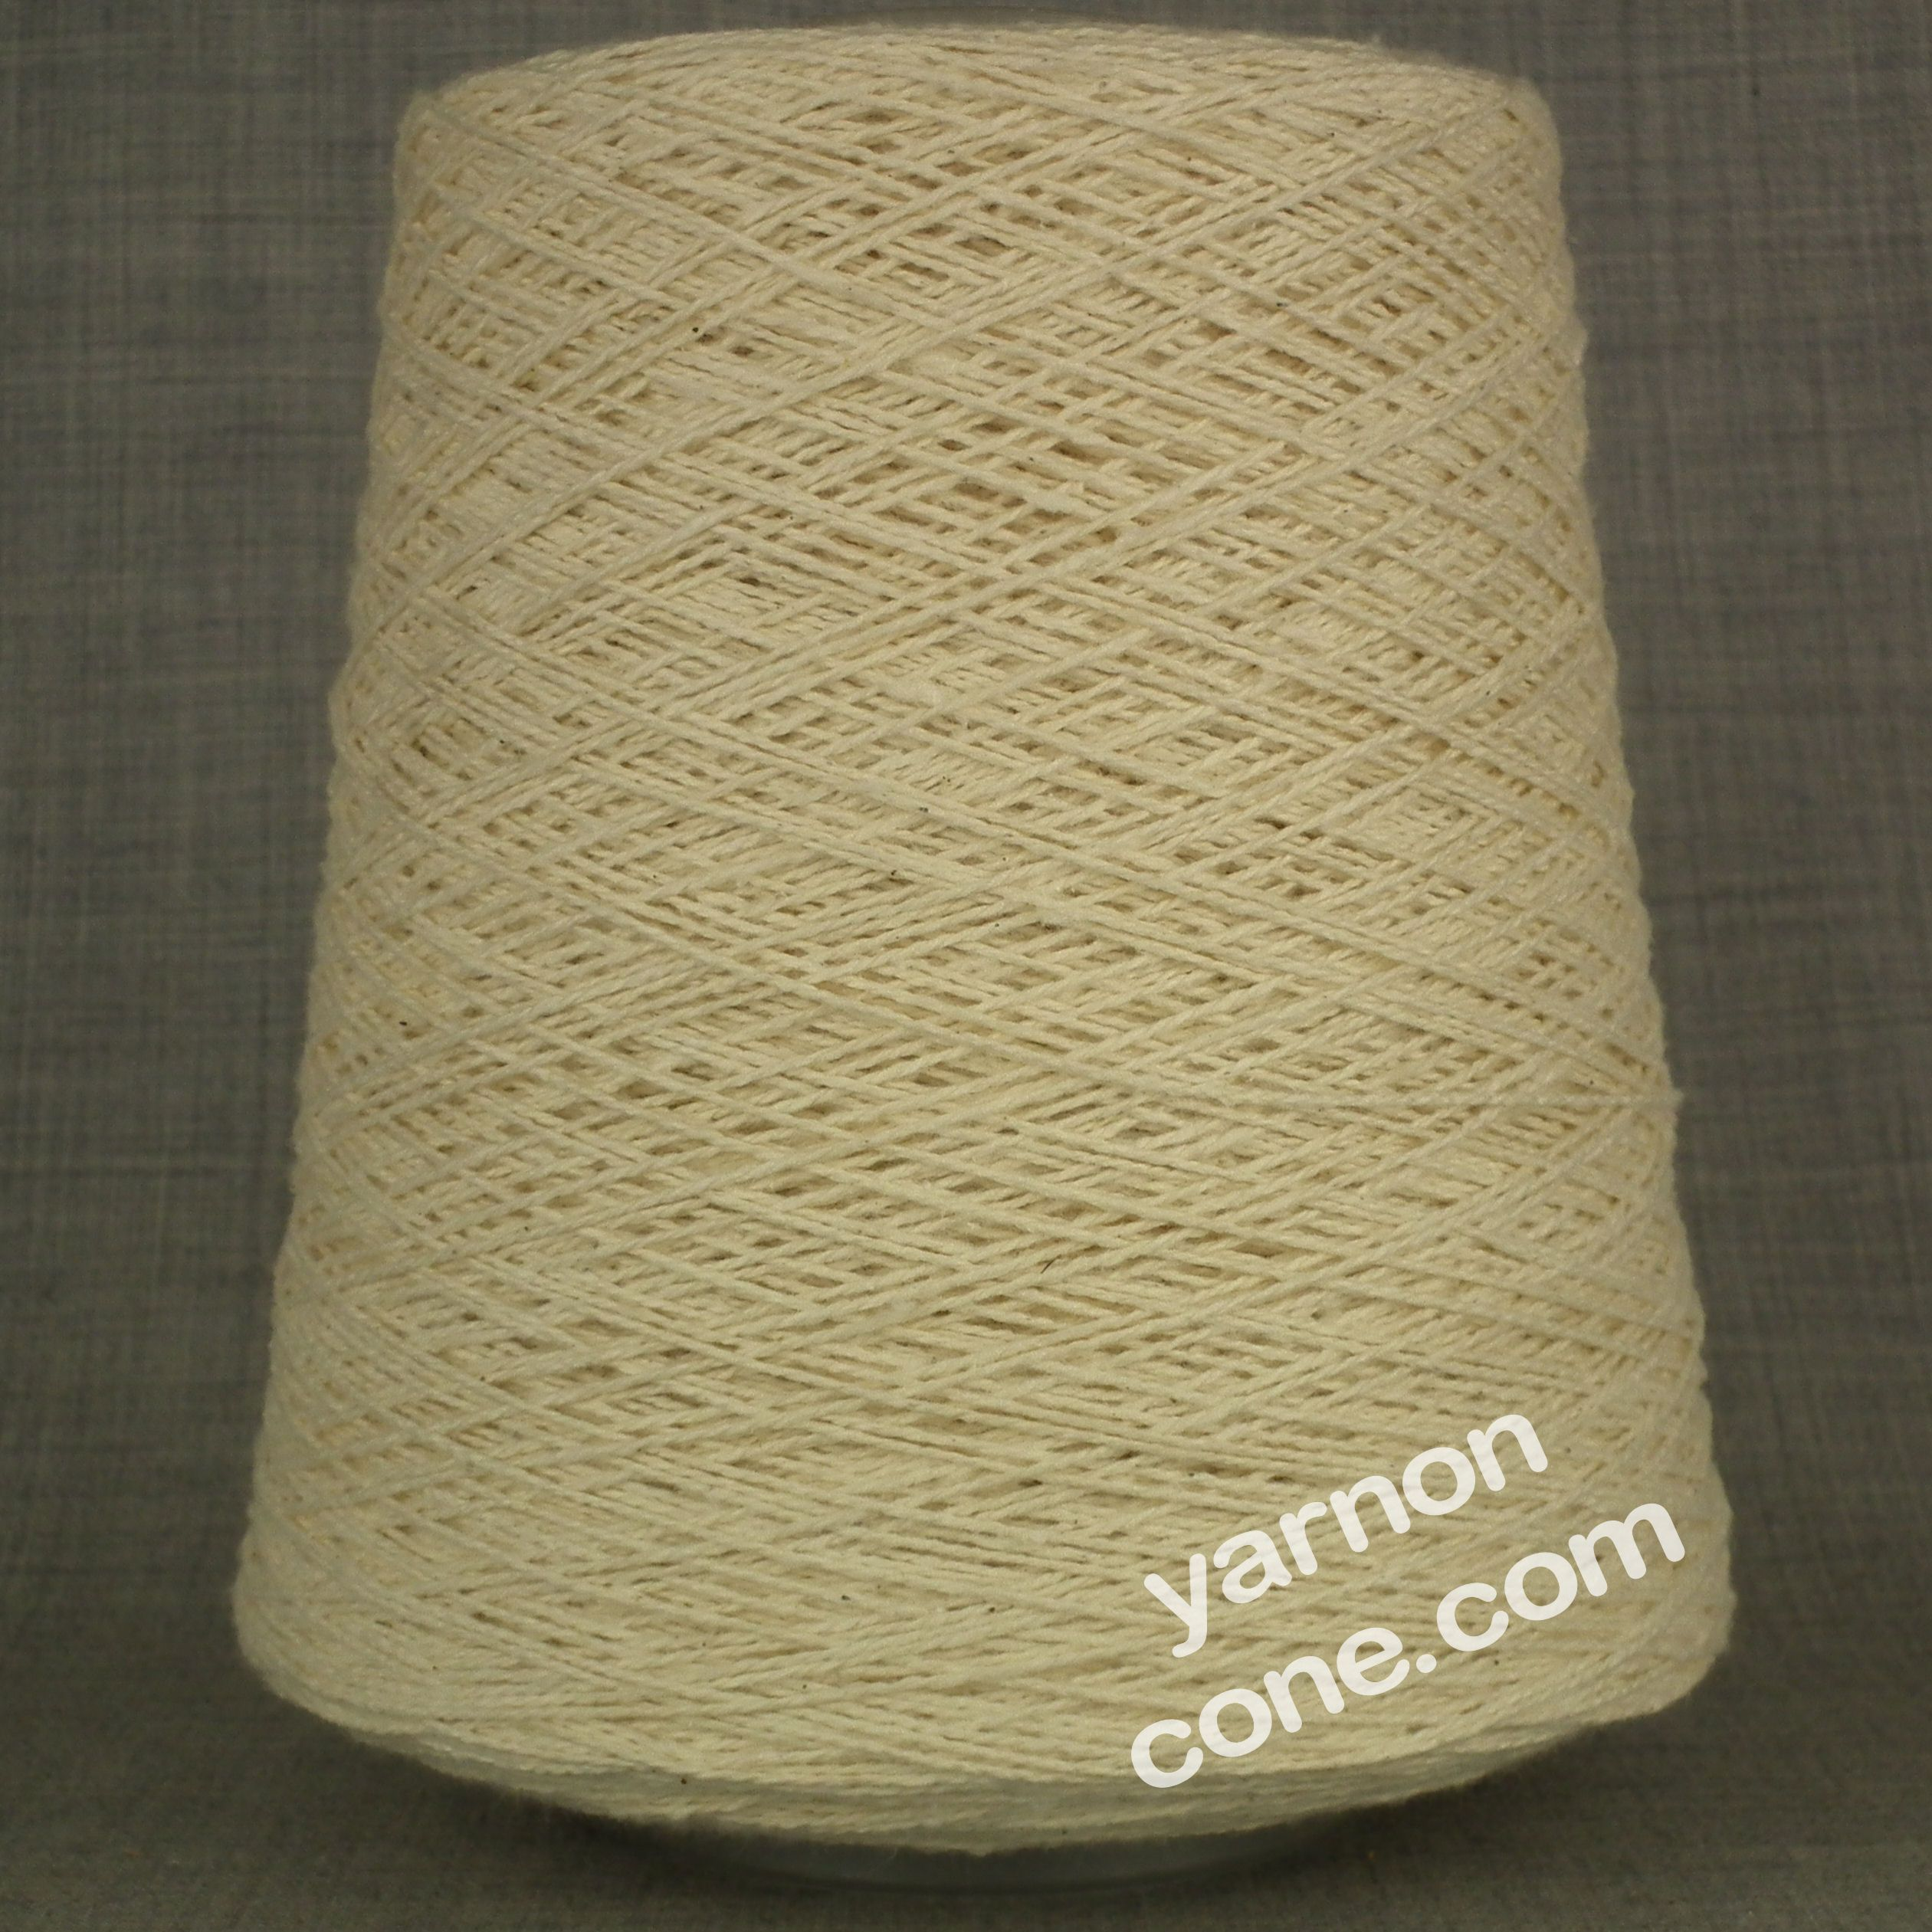 Pure Cotton 2 4ne Weaving Twist Yarn On Cone